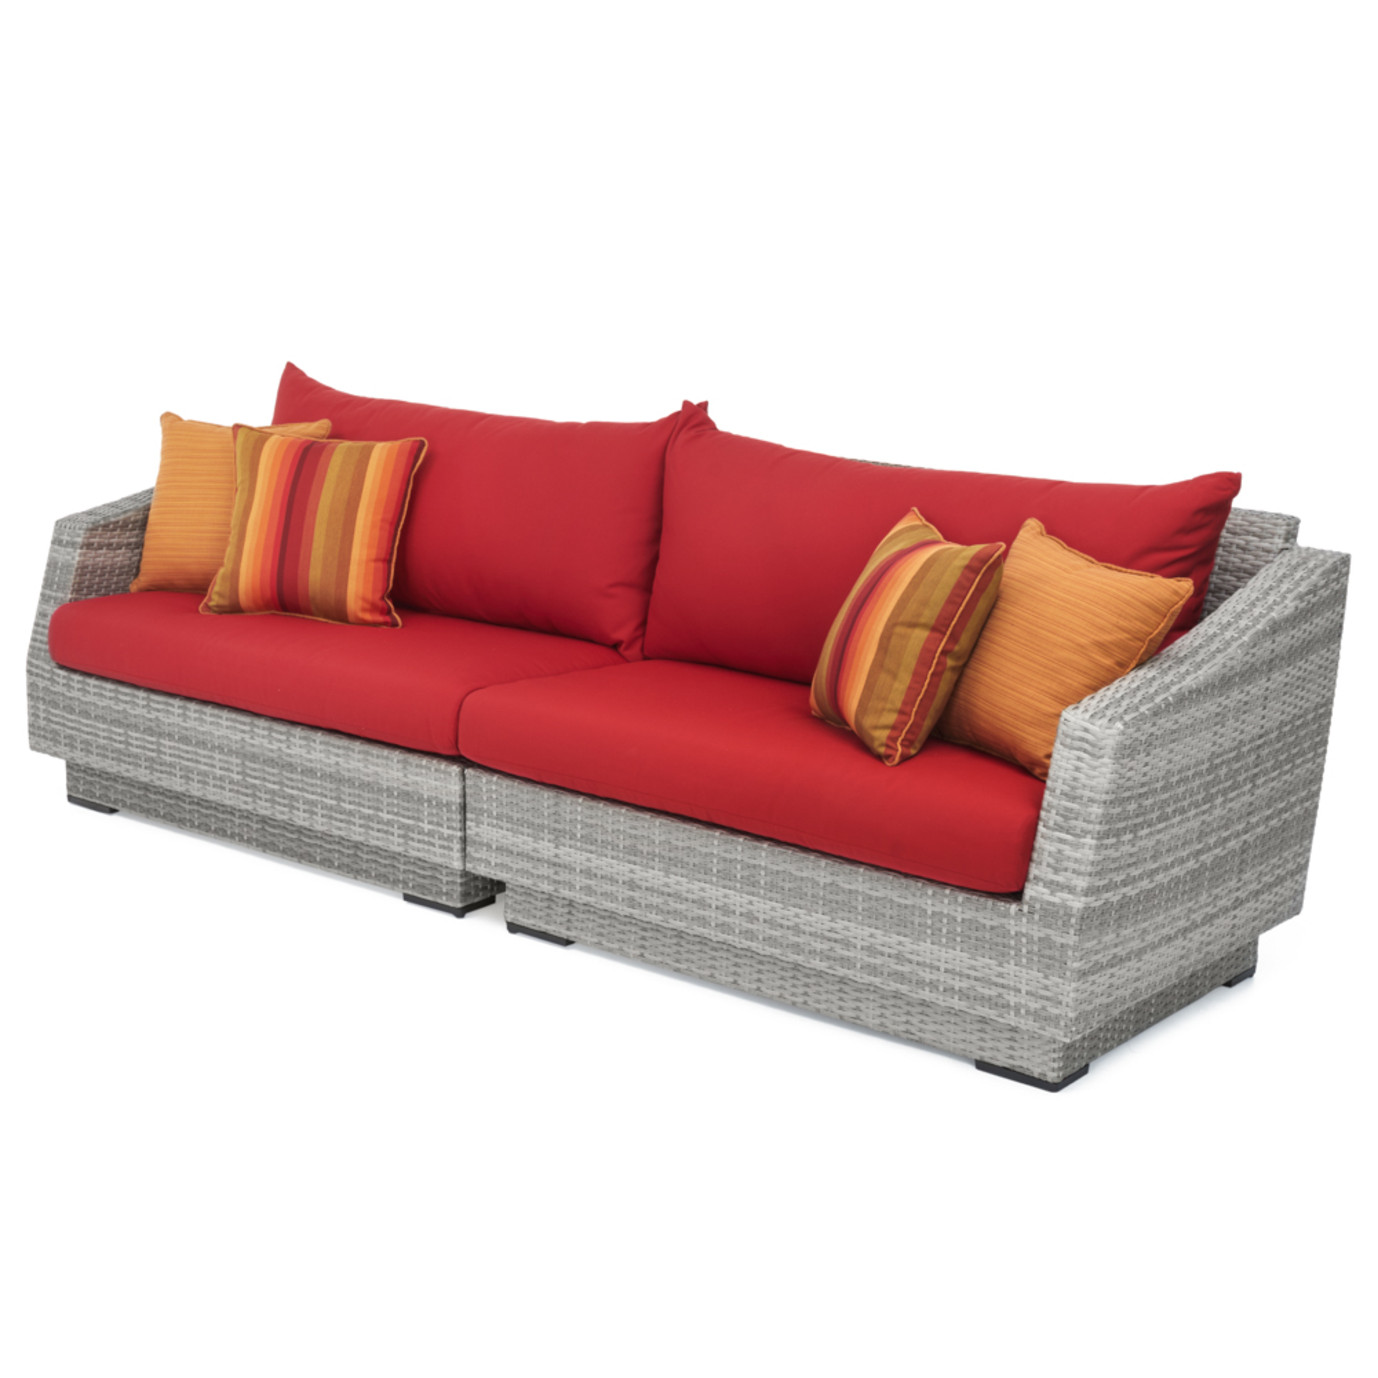 Cannes™ Sofa - Sunset Red